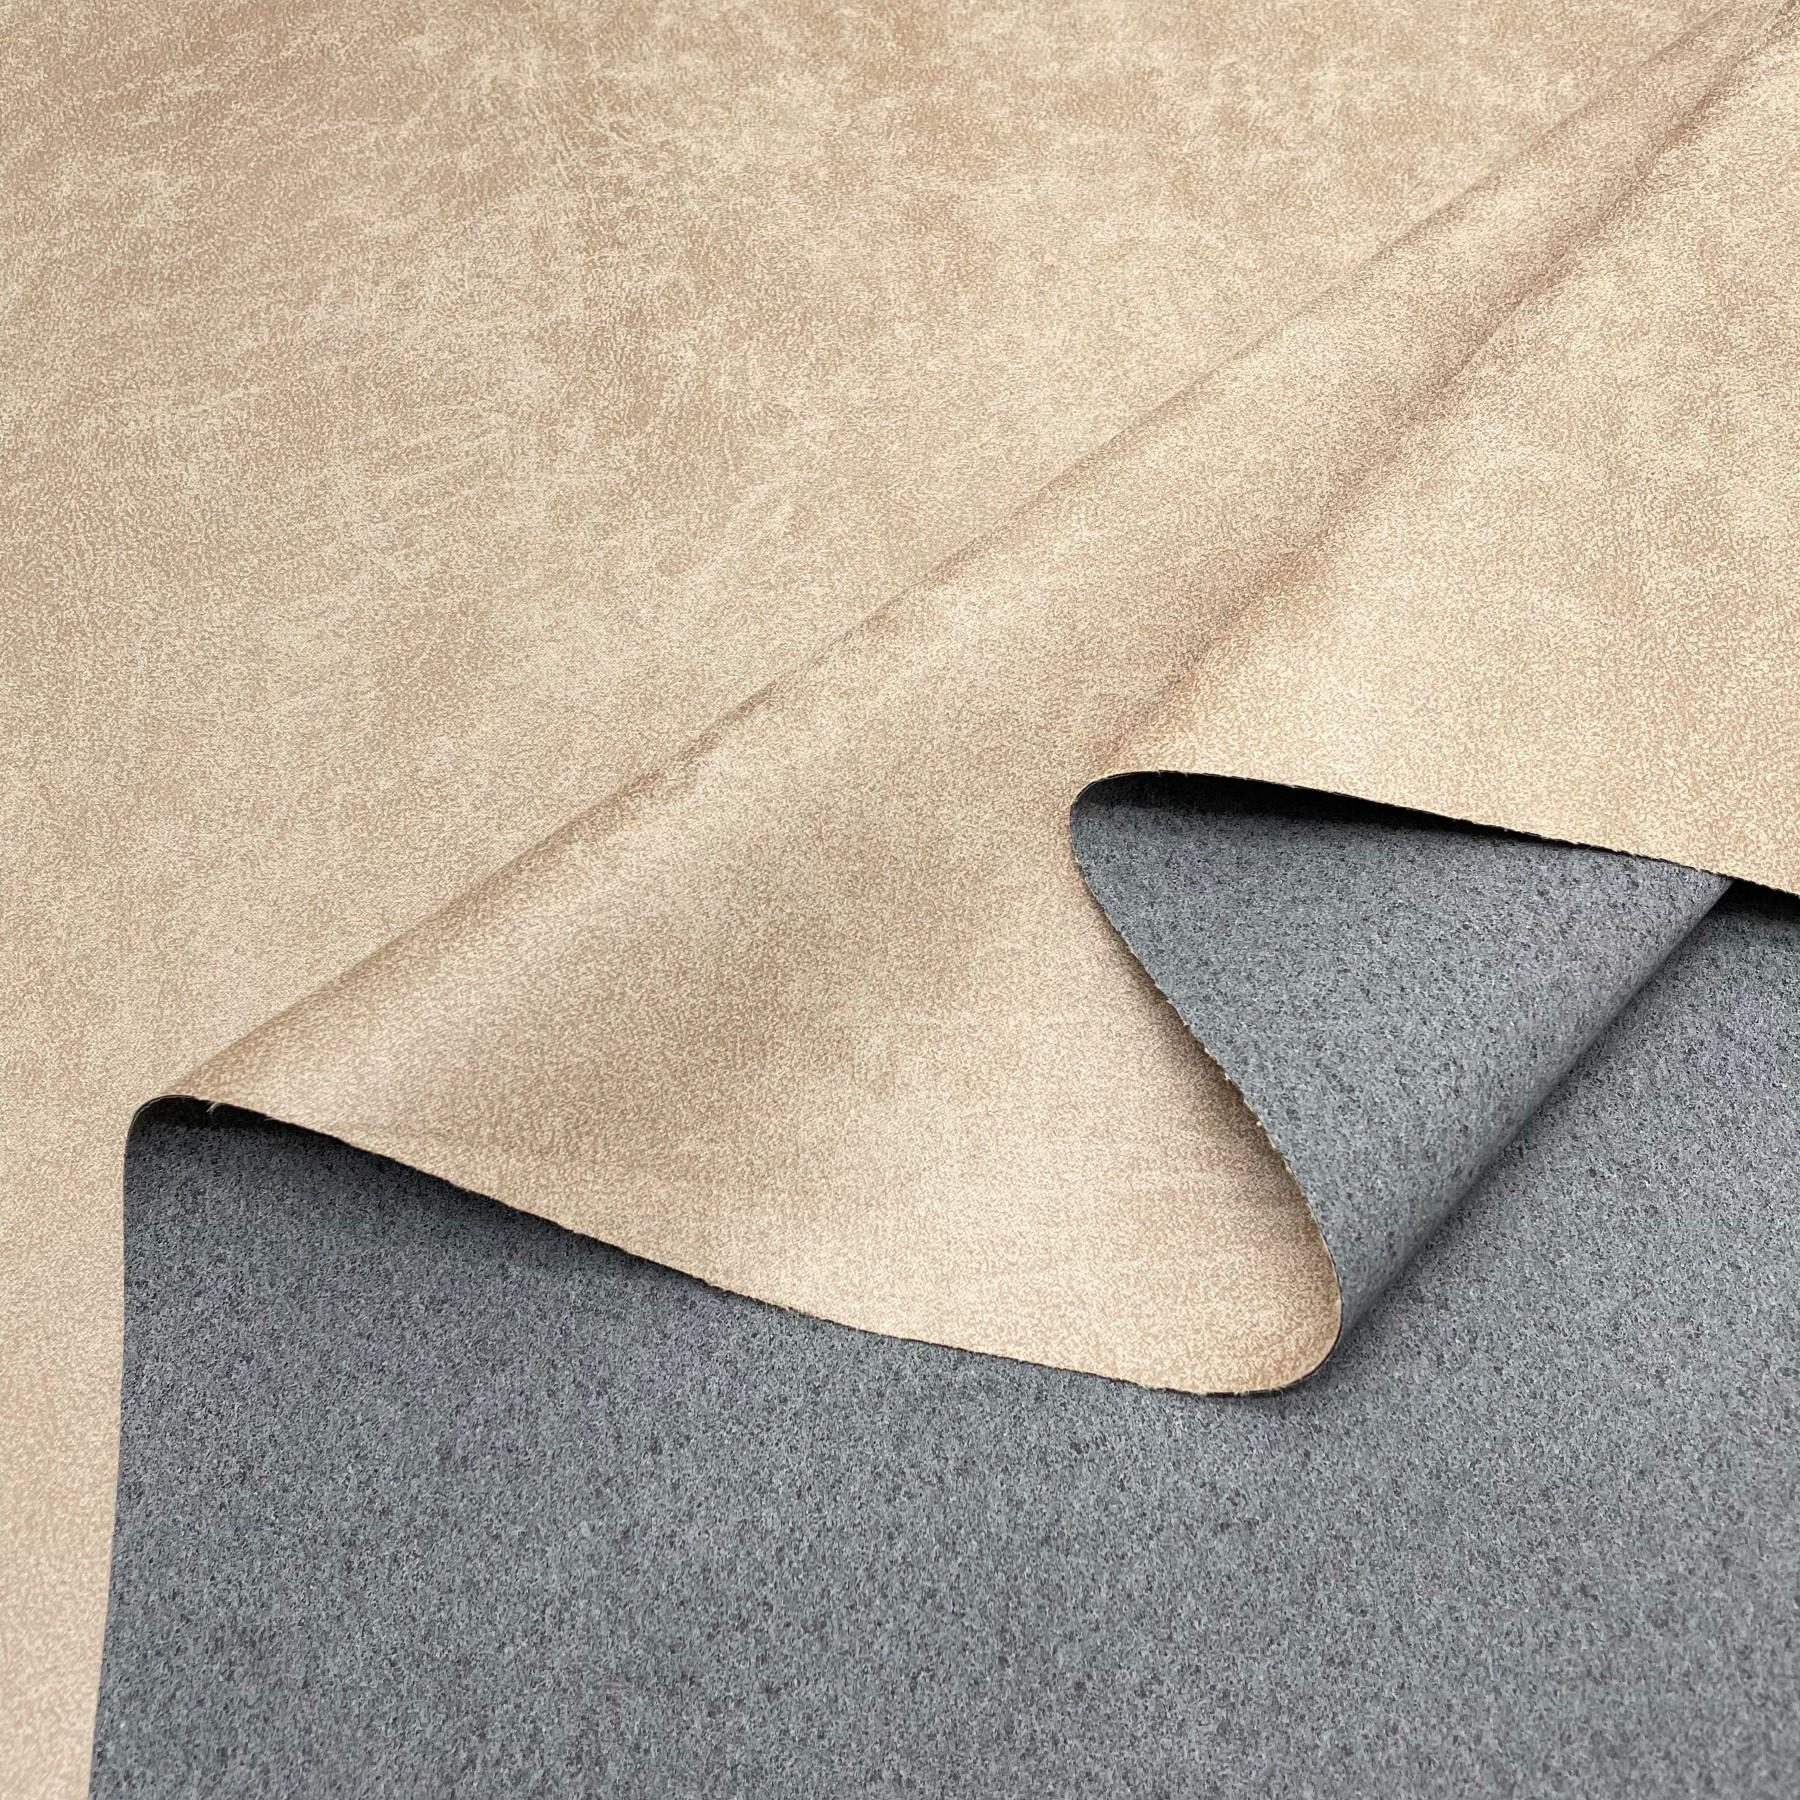 thumbnail 6 - AGED BROWN DISTRESSED ANTIQUED SUEDE FAUX LEATHER LEATHERETTE UPHOLSTERY FABRIC